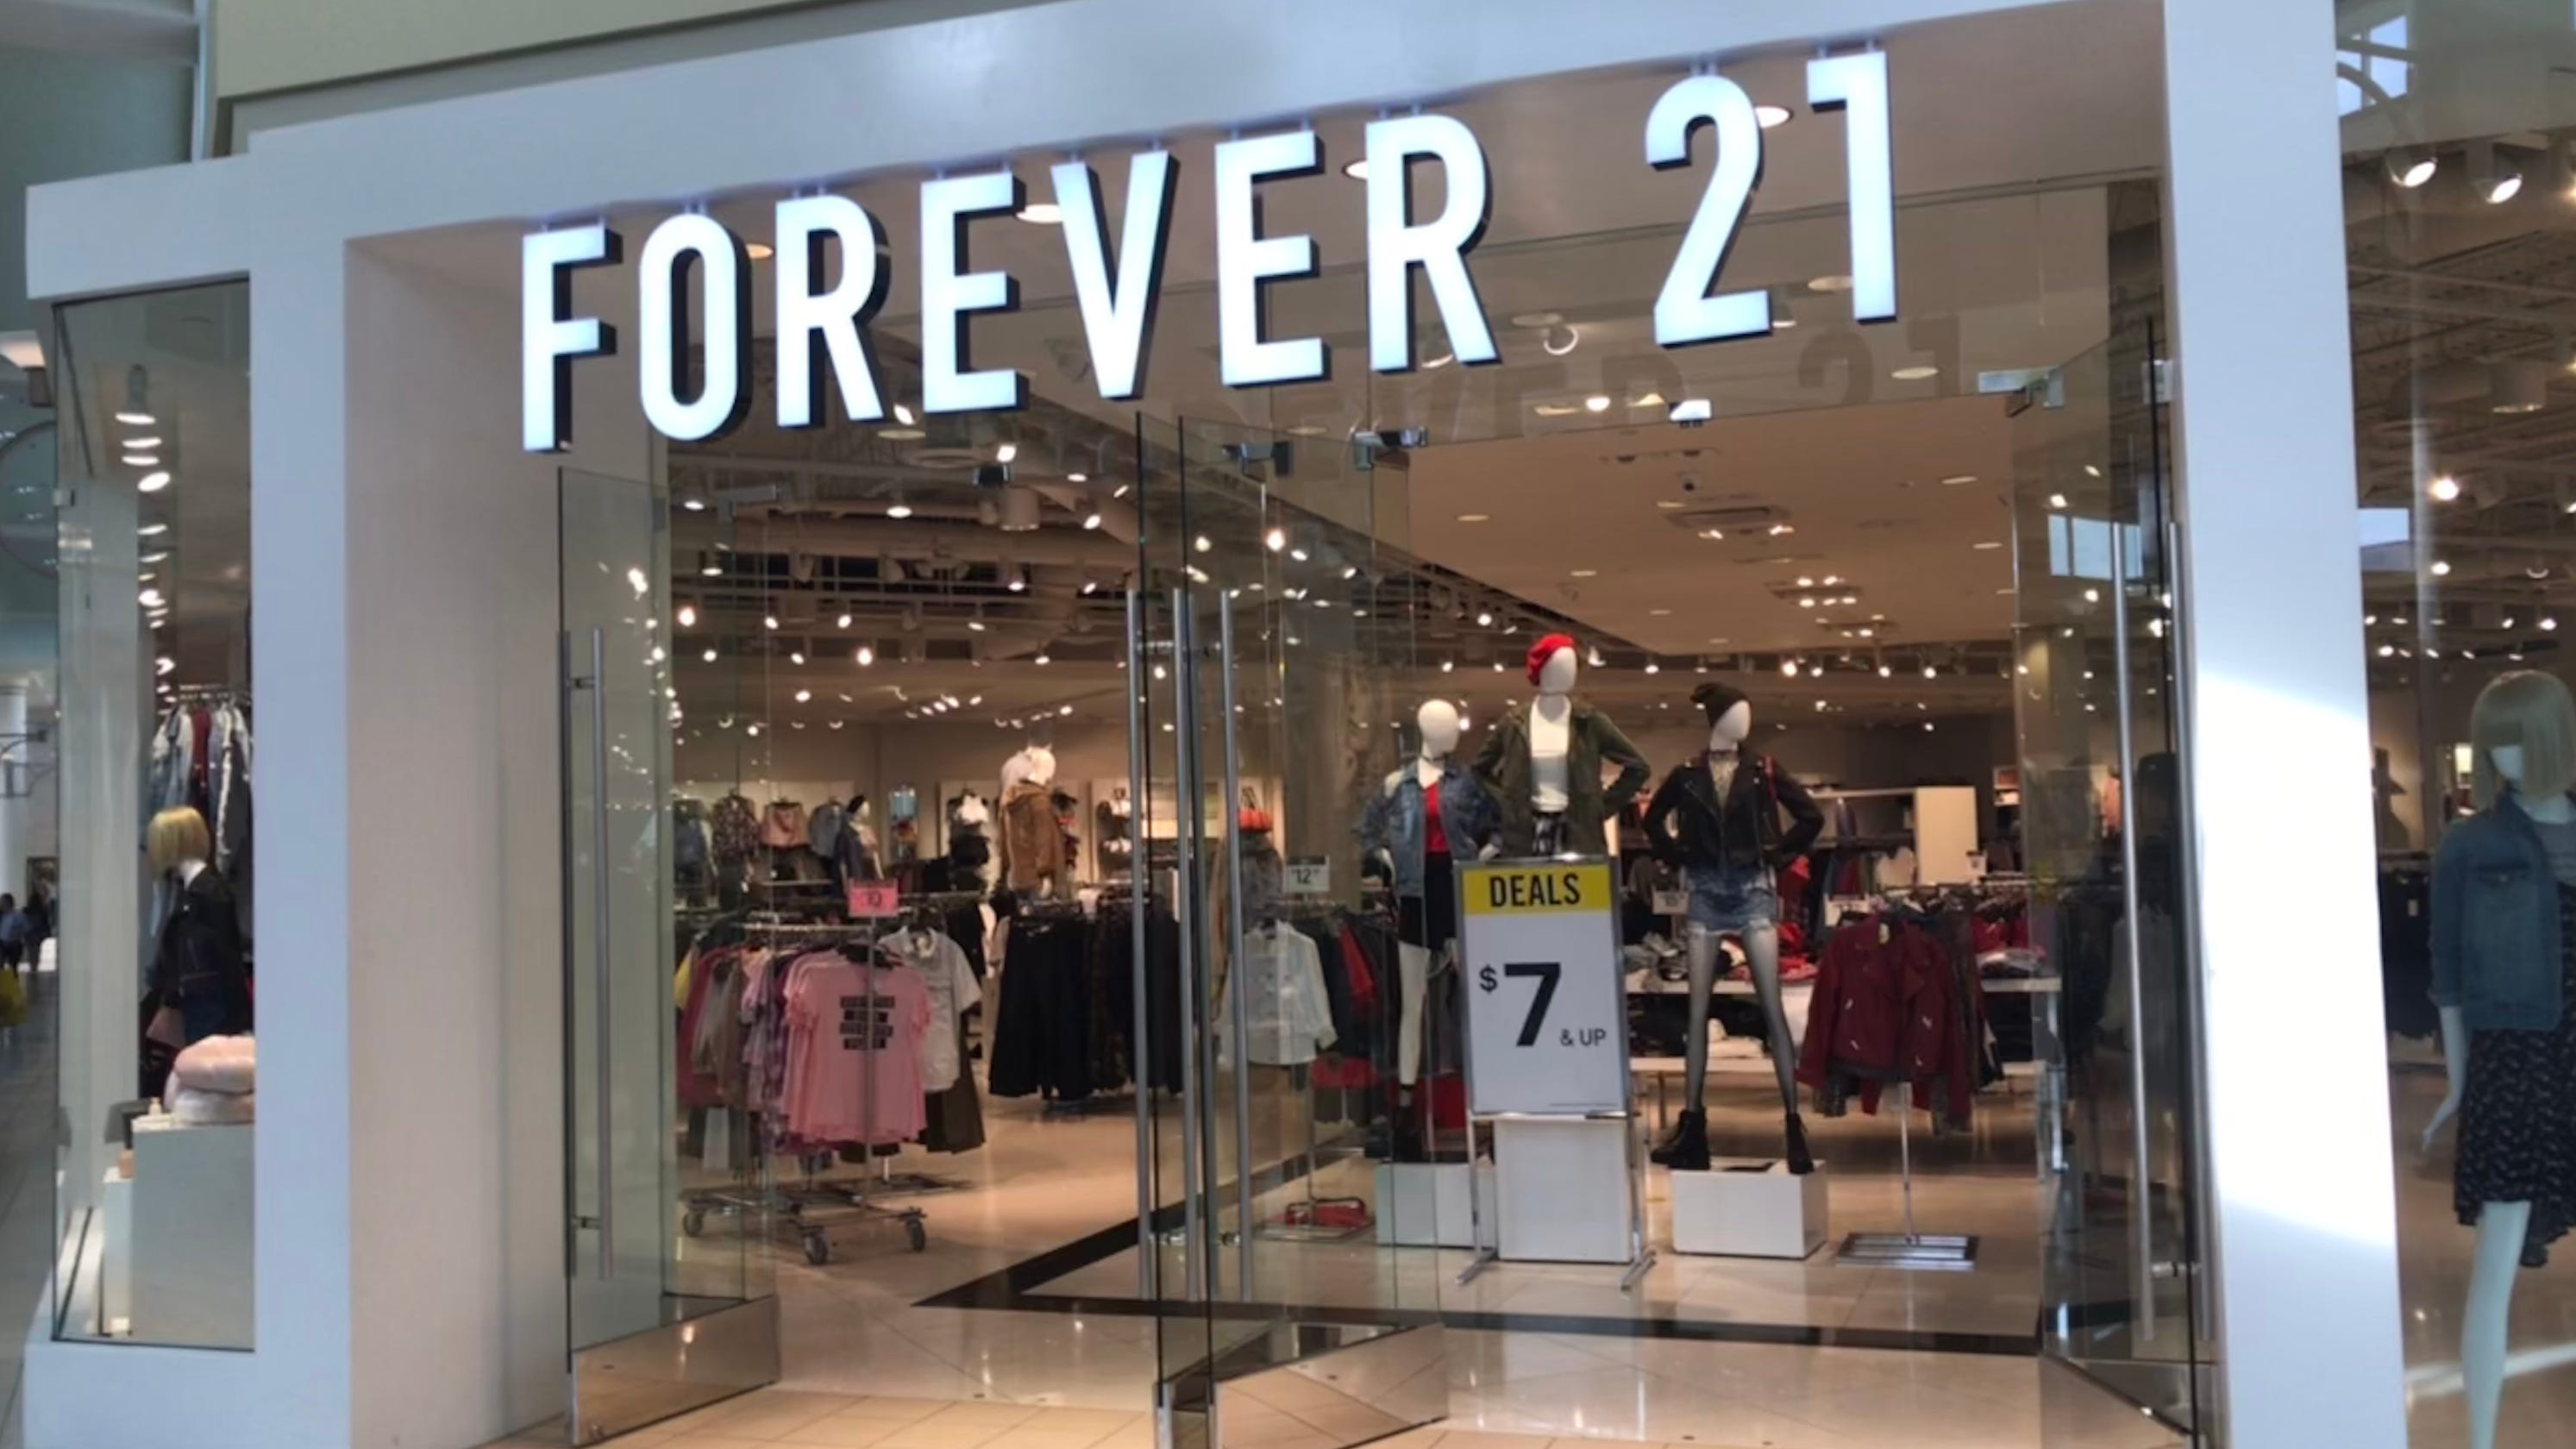 forever 21 | Adler Law Firm PLLC